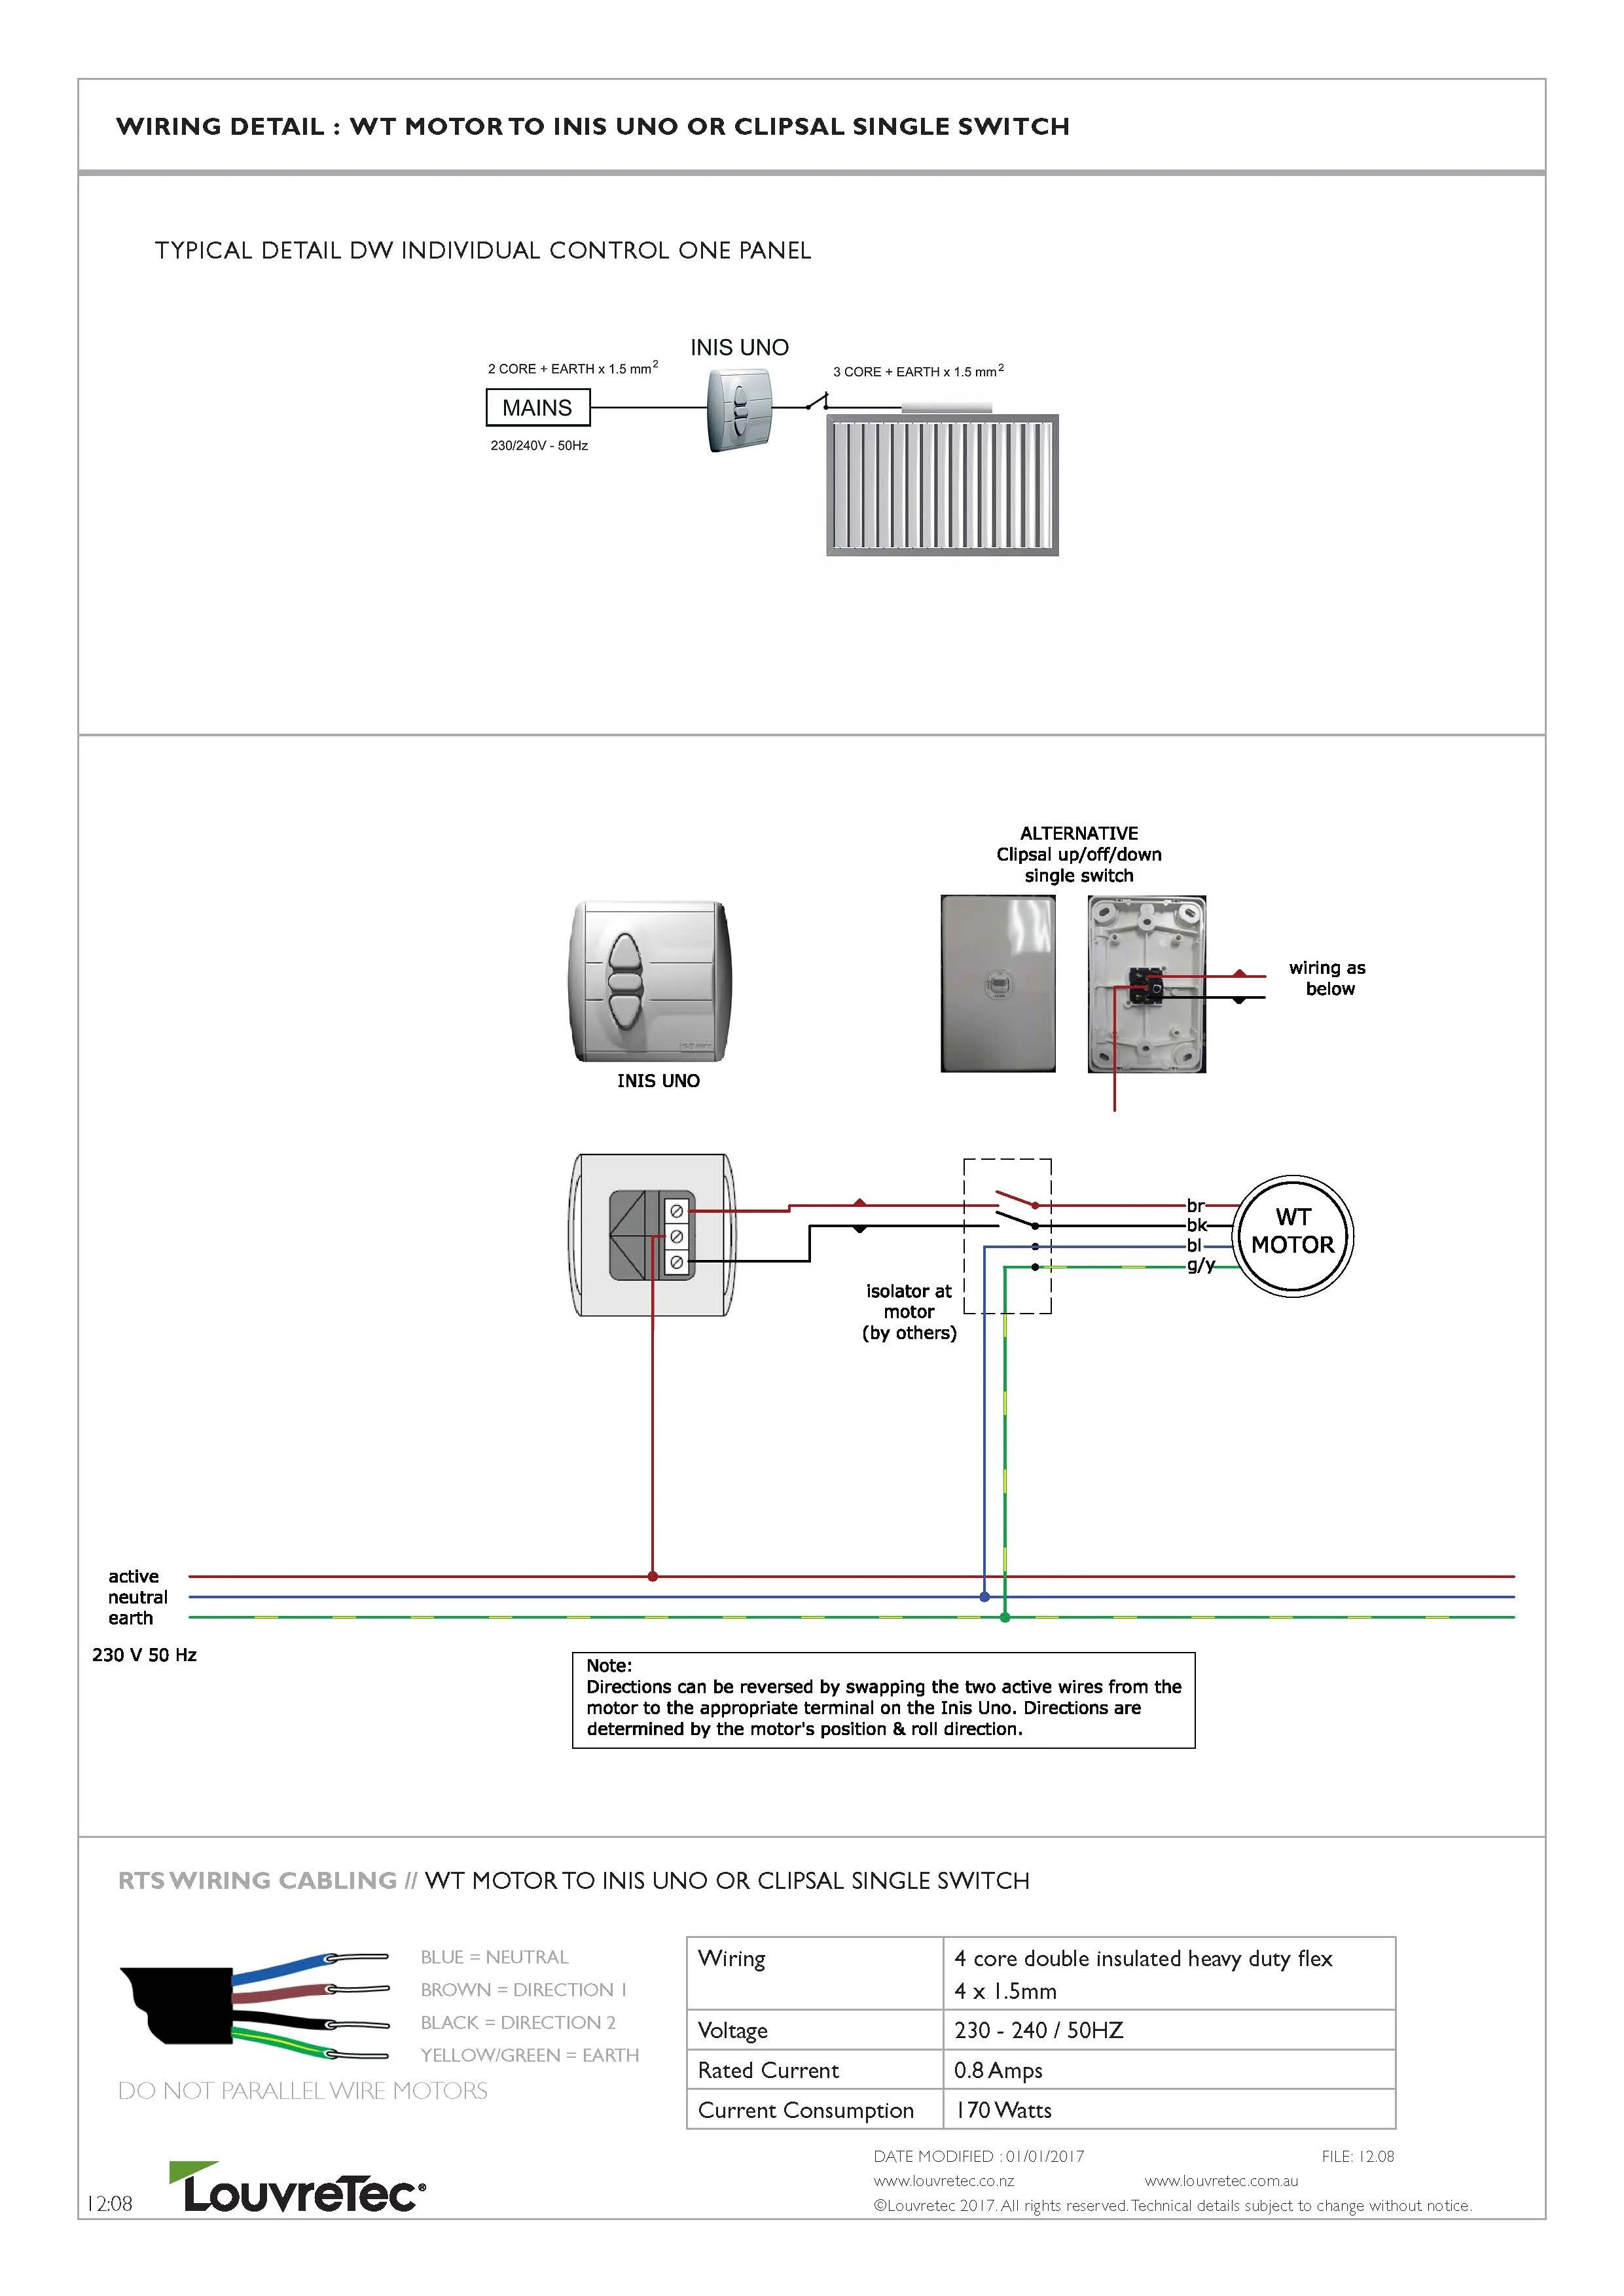 medium resolution of wt motor to inis uno or clipsal single switch 12 08